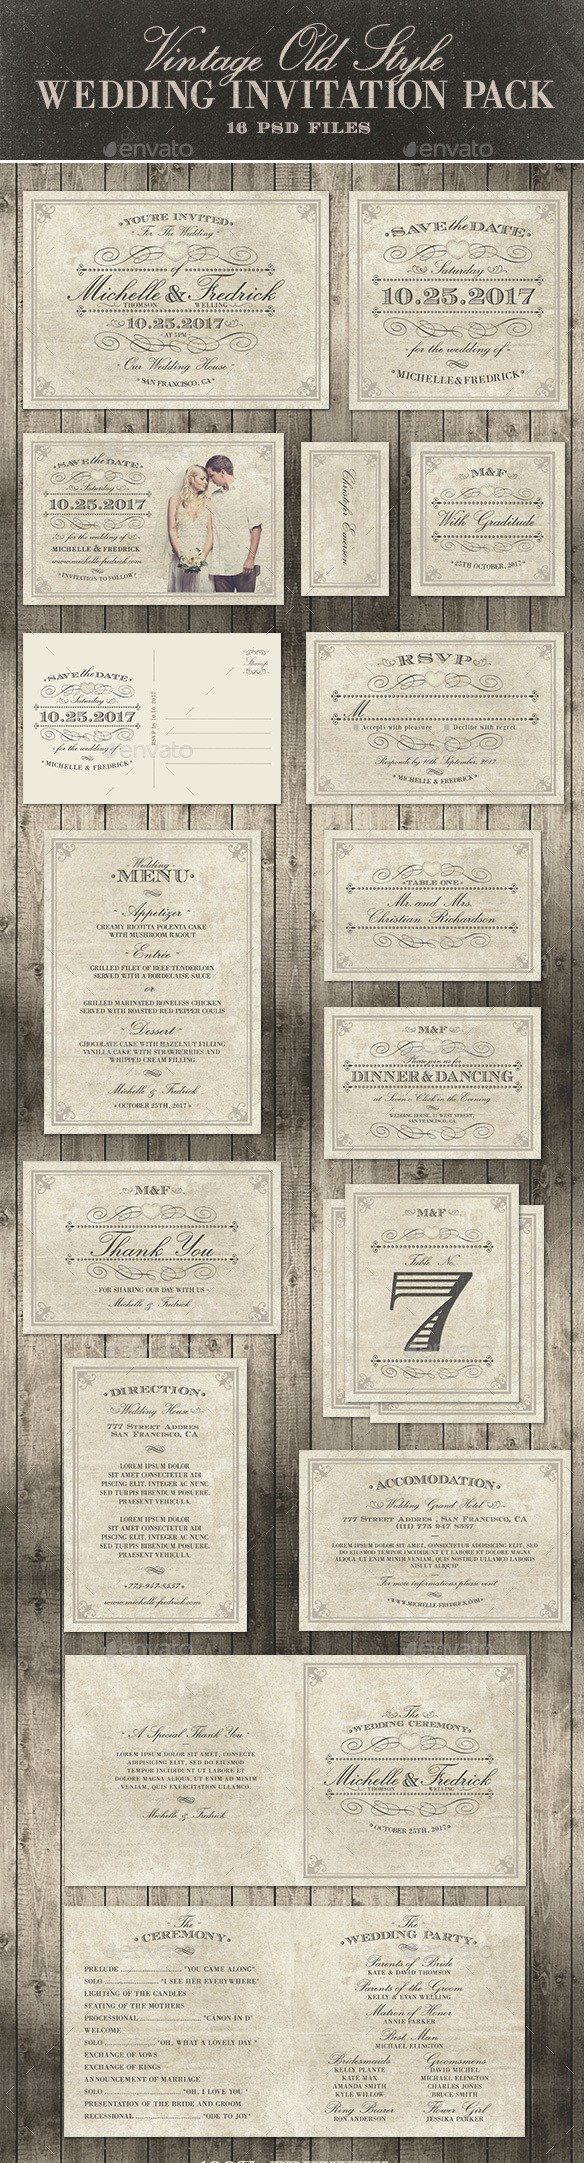 Wedding Invitation Package - Vintage Old Style